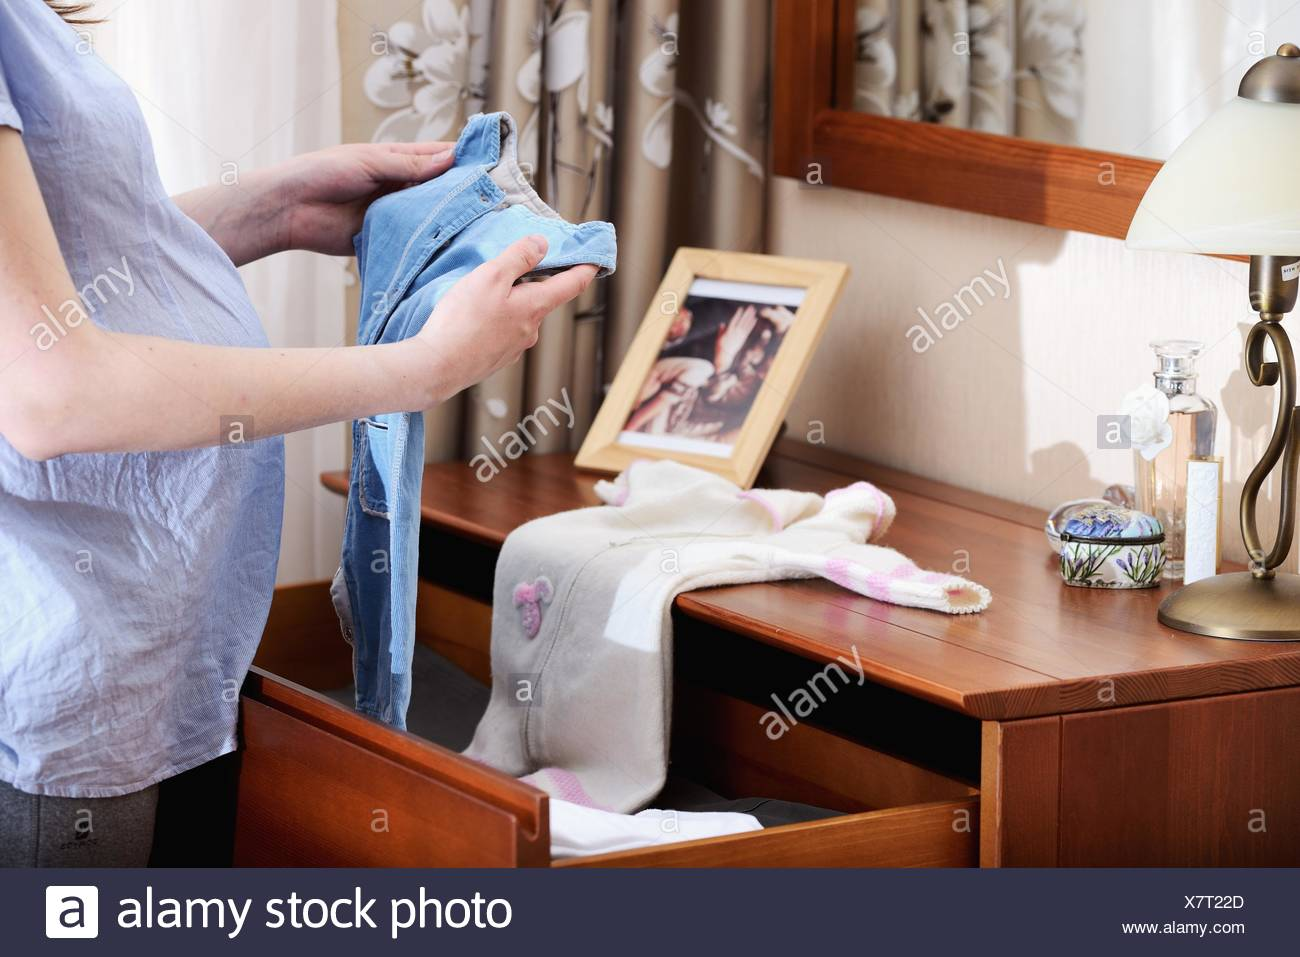 Pregnant woman holding baby clothes, mid section Photo Stock